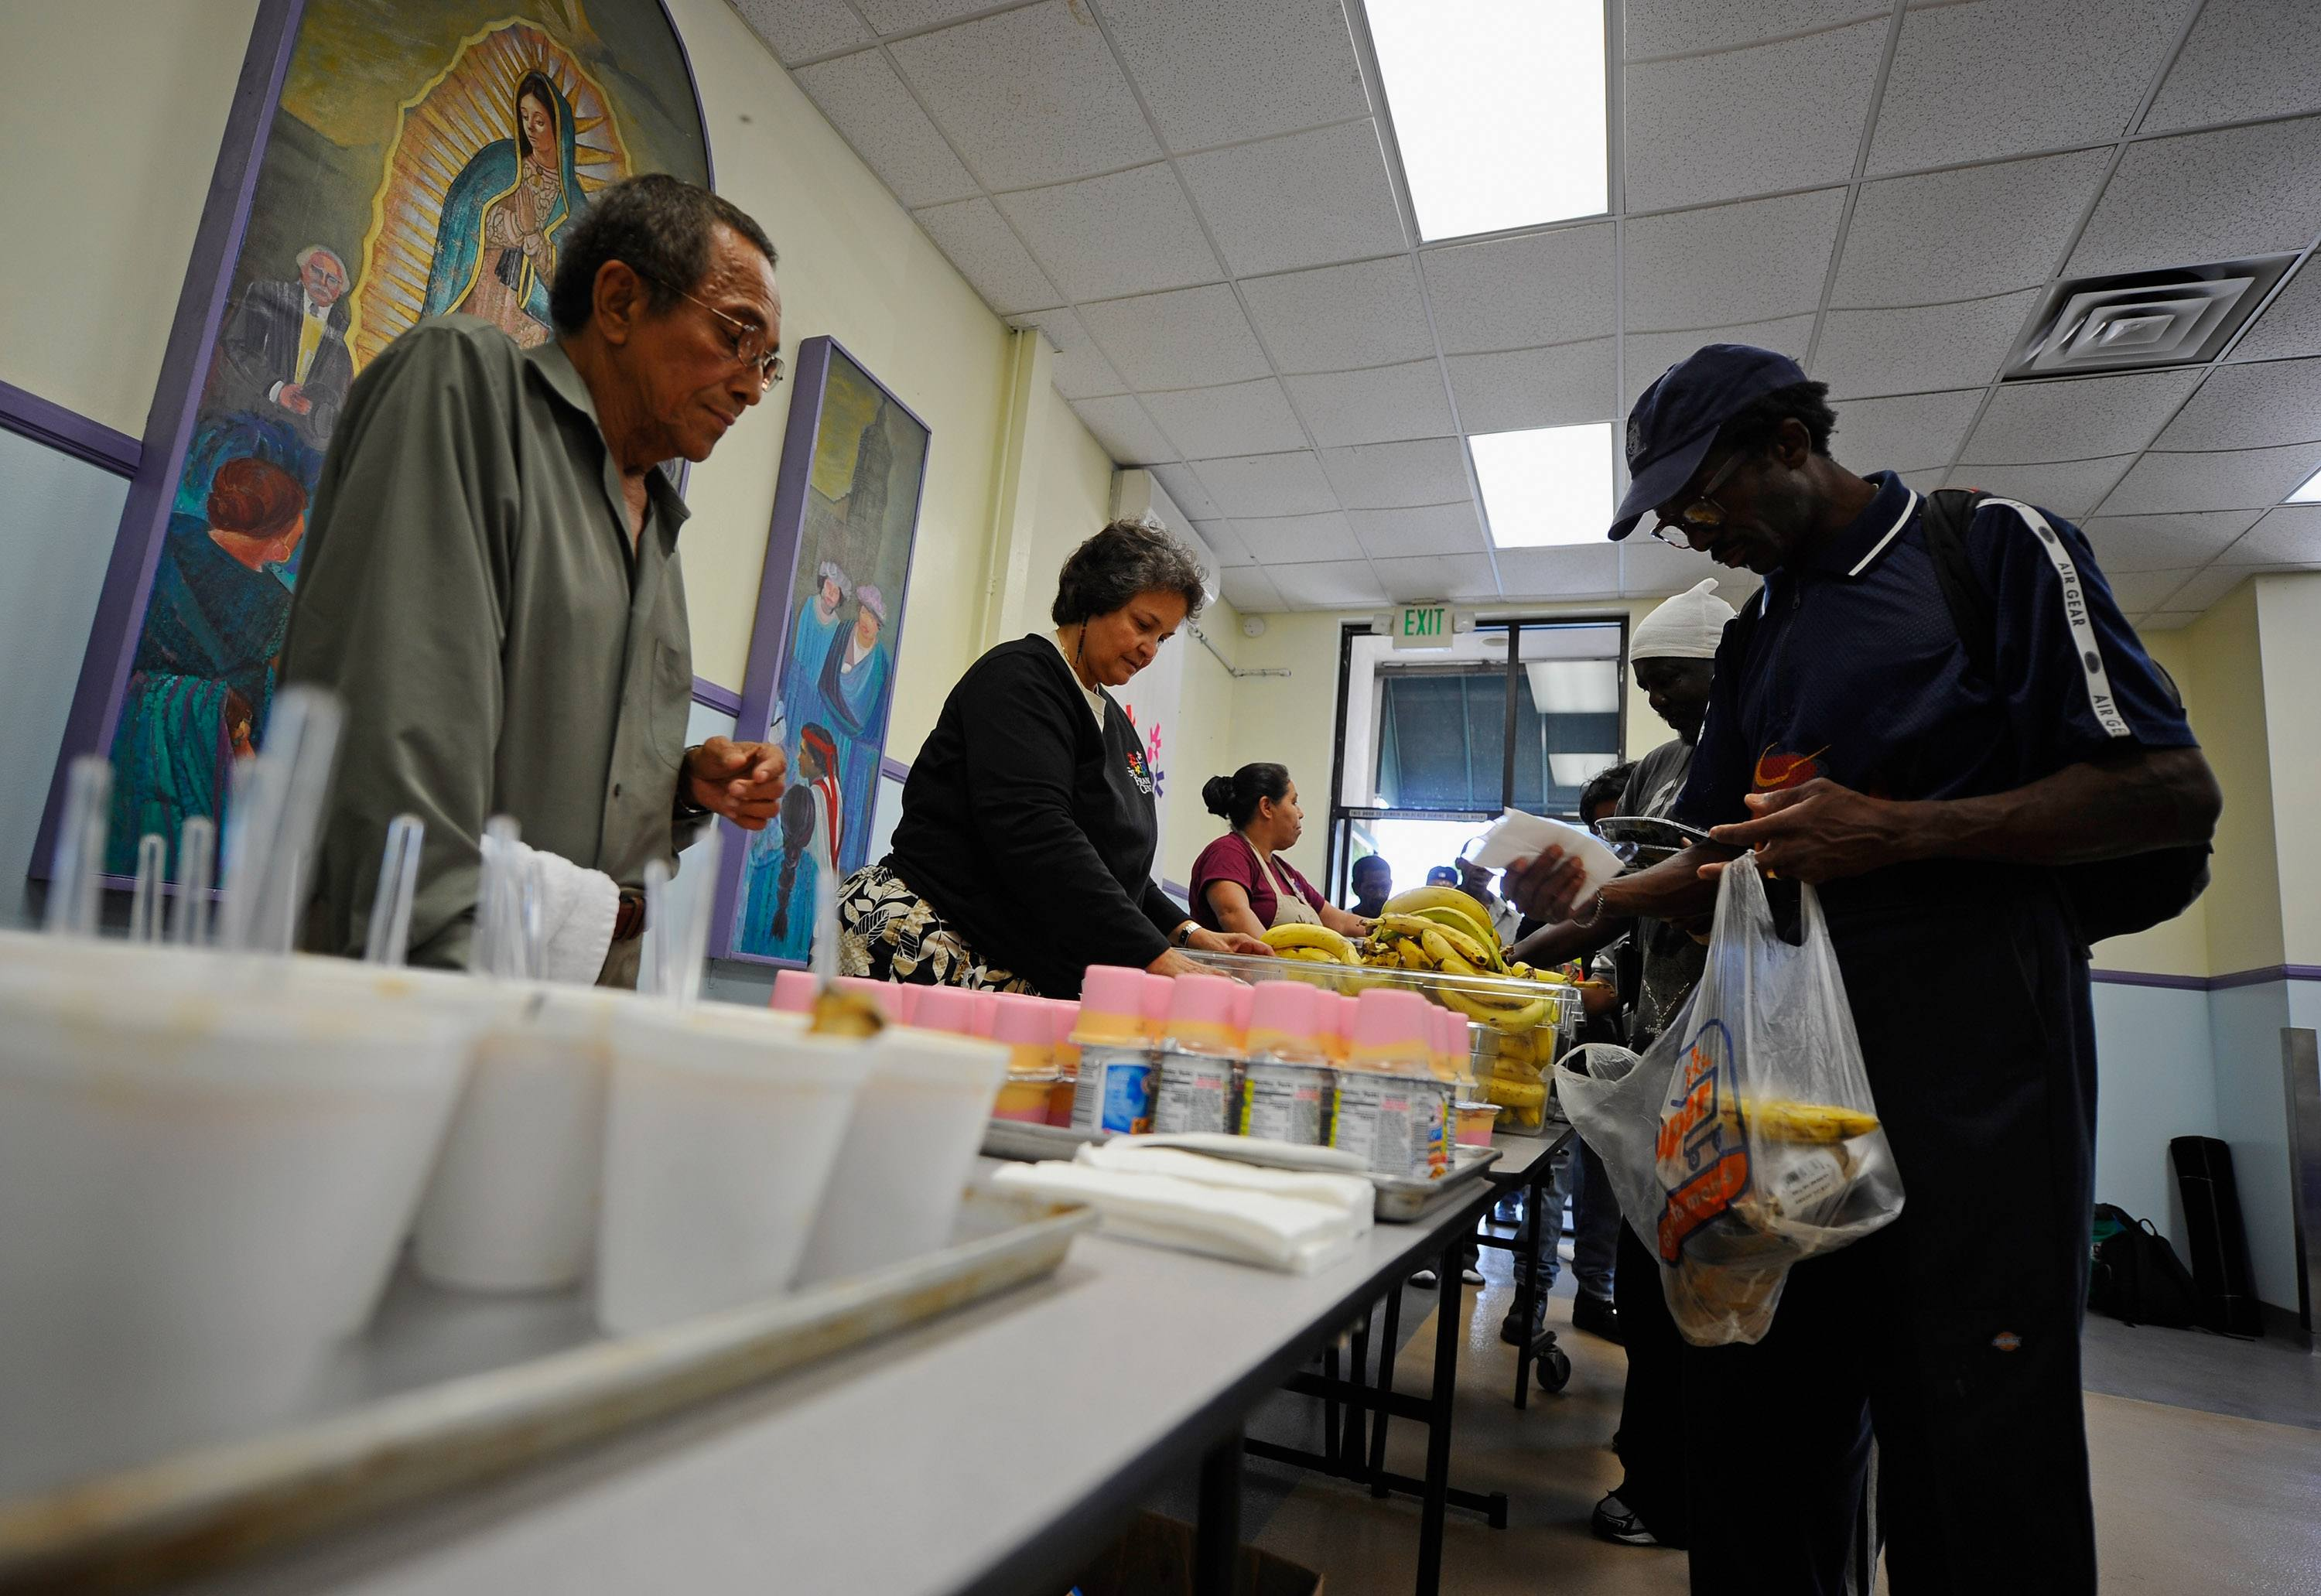 Soup Kitchen US Poverty Rate Rises To Highest Since 1983